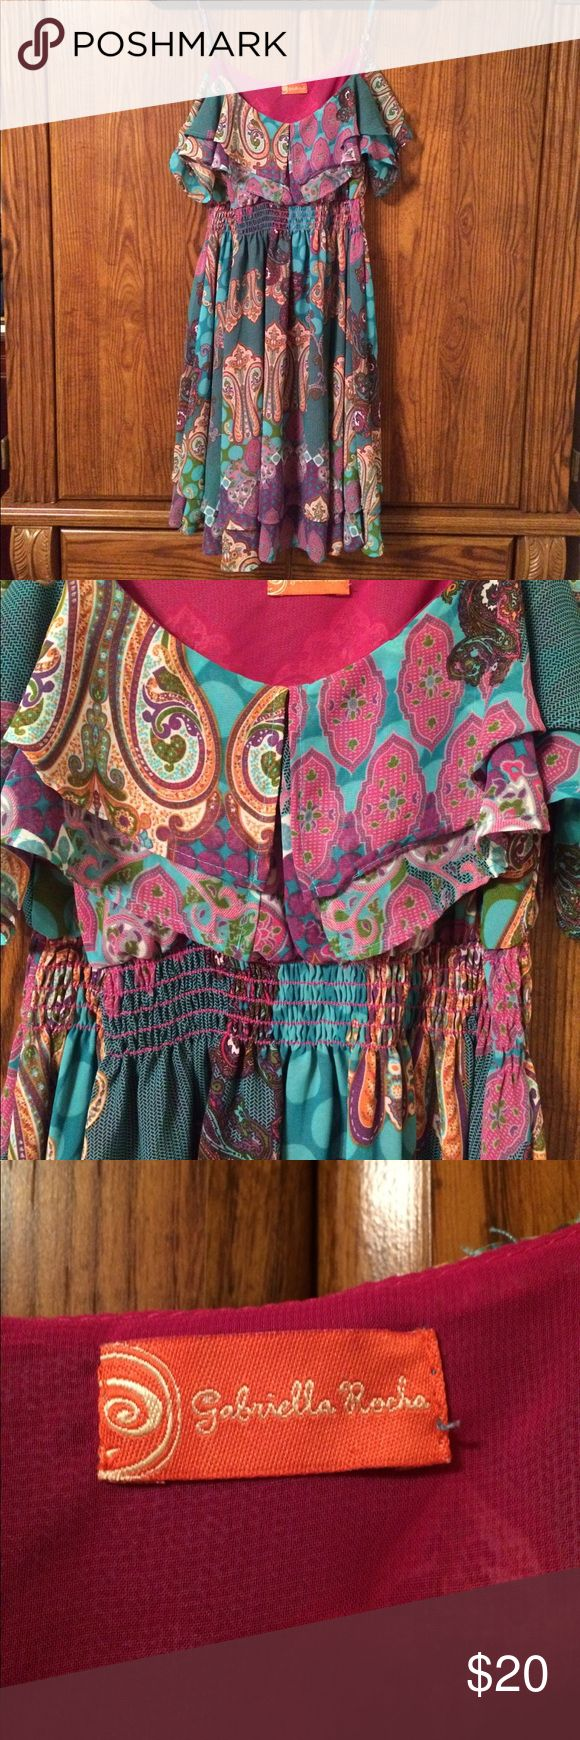 Gabriella Rocha Sundress Adorable Gabriella Rocha Sundress. Beautiful colors. Turquoise, Fuchsia, Green & Cream. Size Medium. Gabriella Rocha Dresses Mini